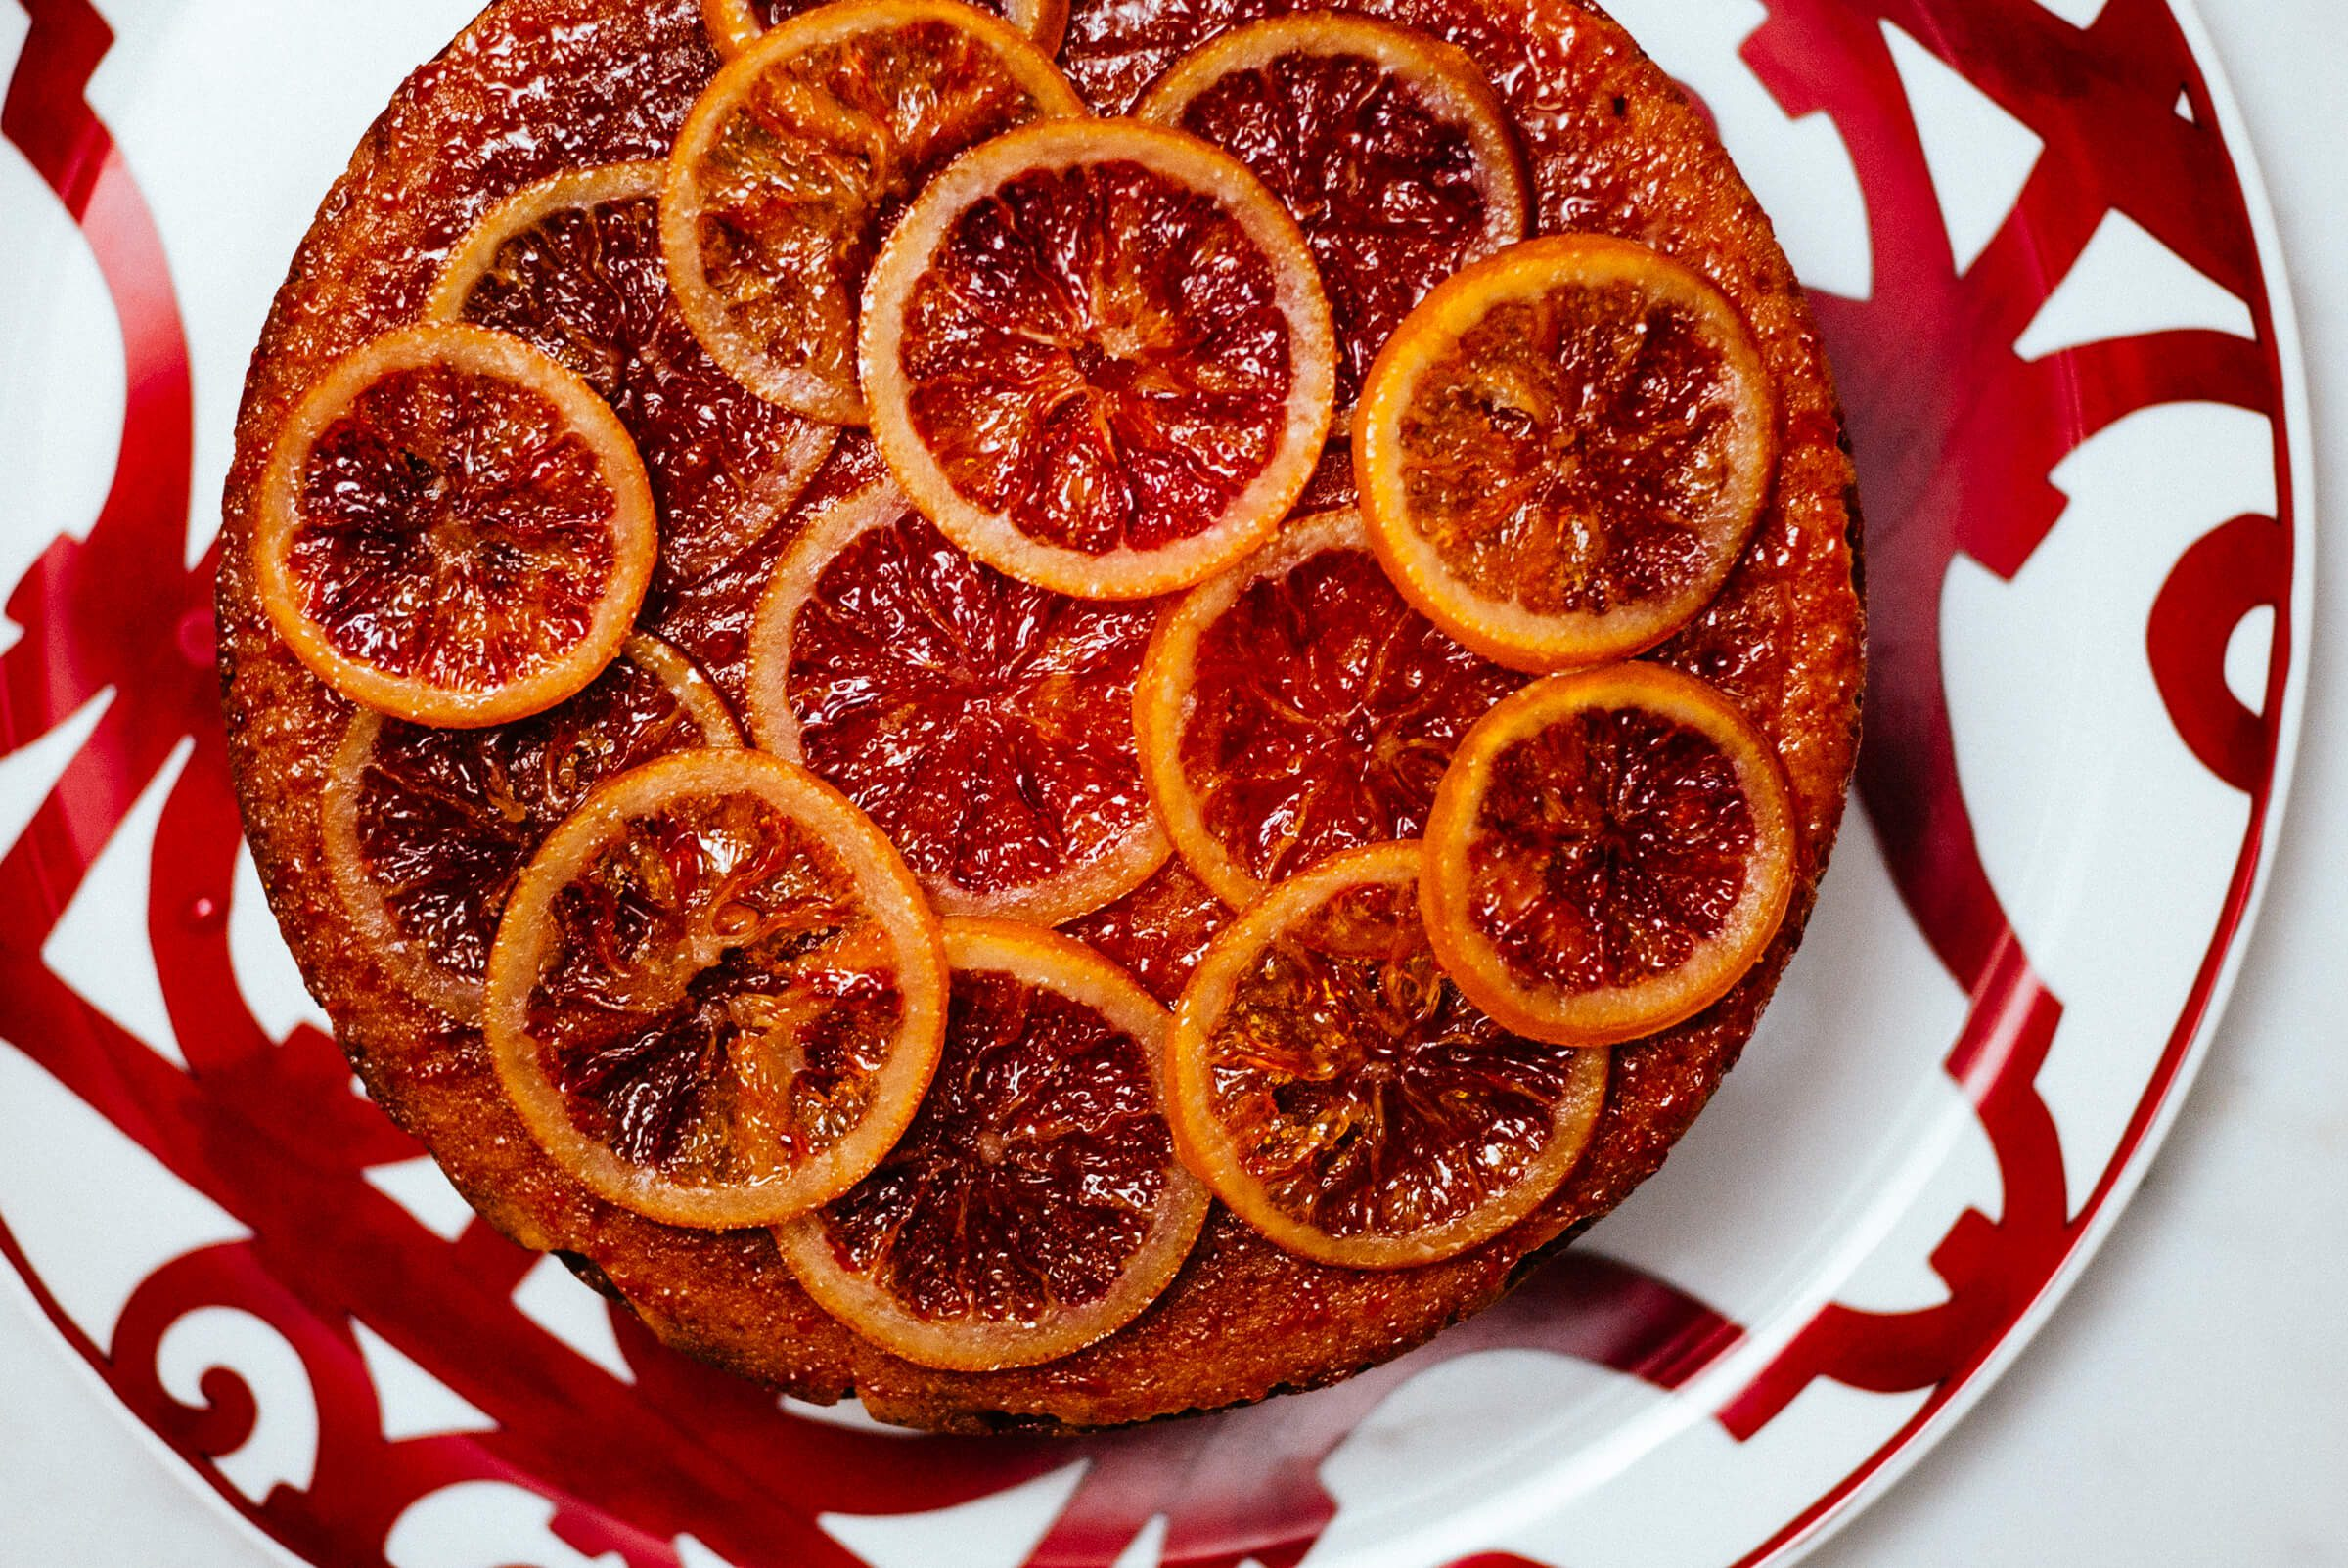 The Taste Edit uses Chef'n measure up measuring glasses to make a blood orange campari cake topped with homemade candied oranges